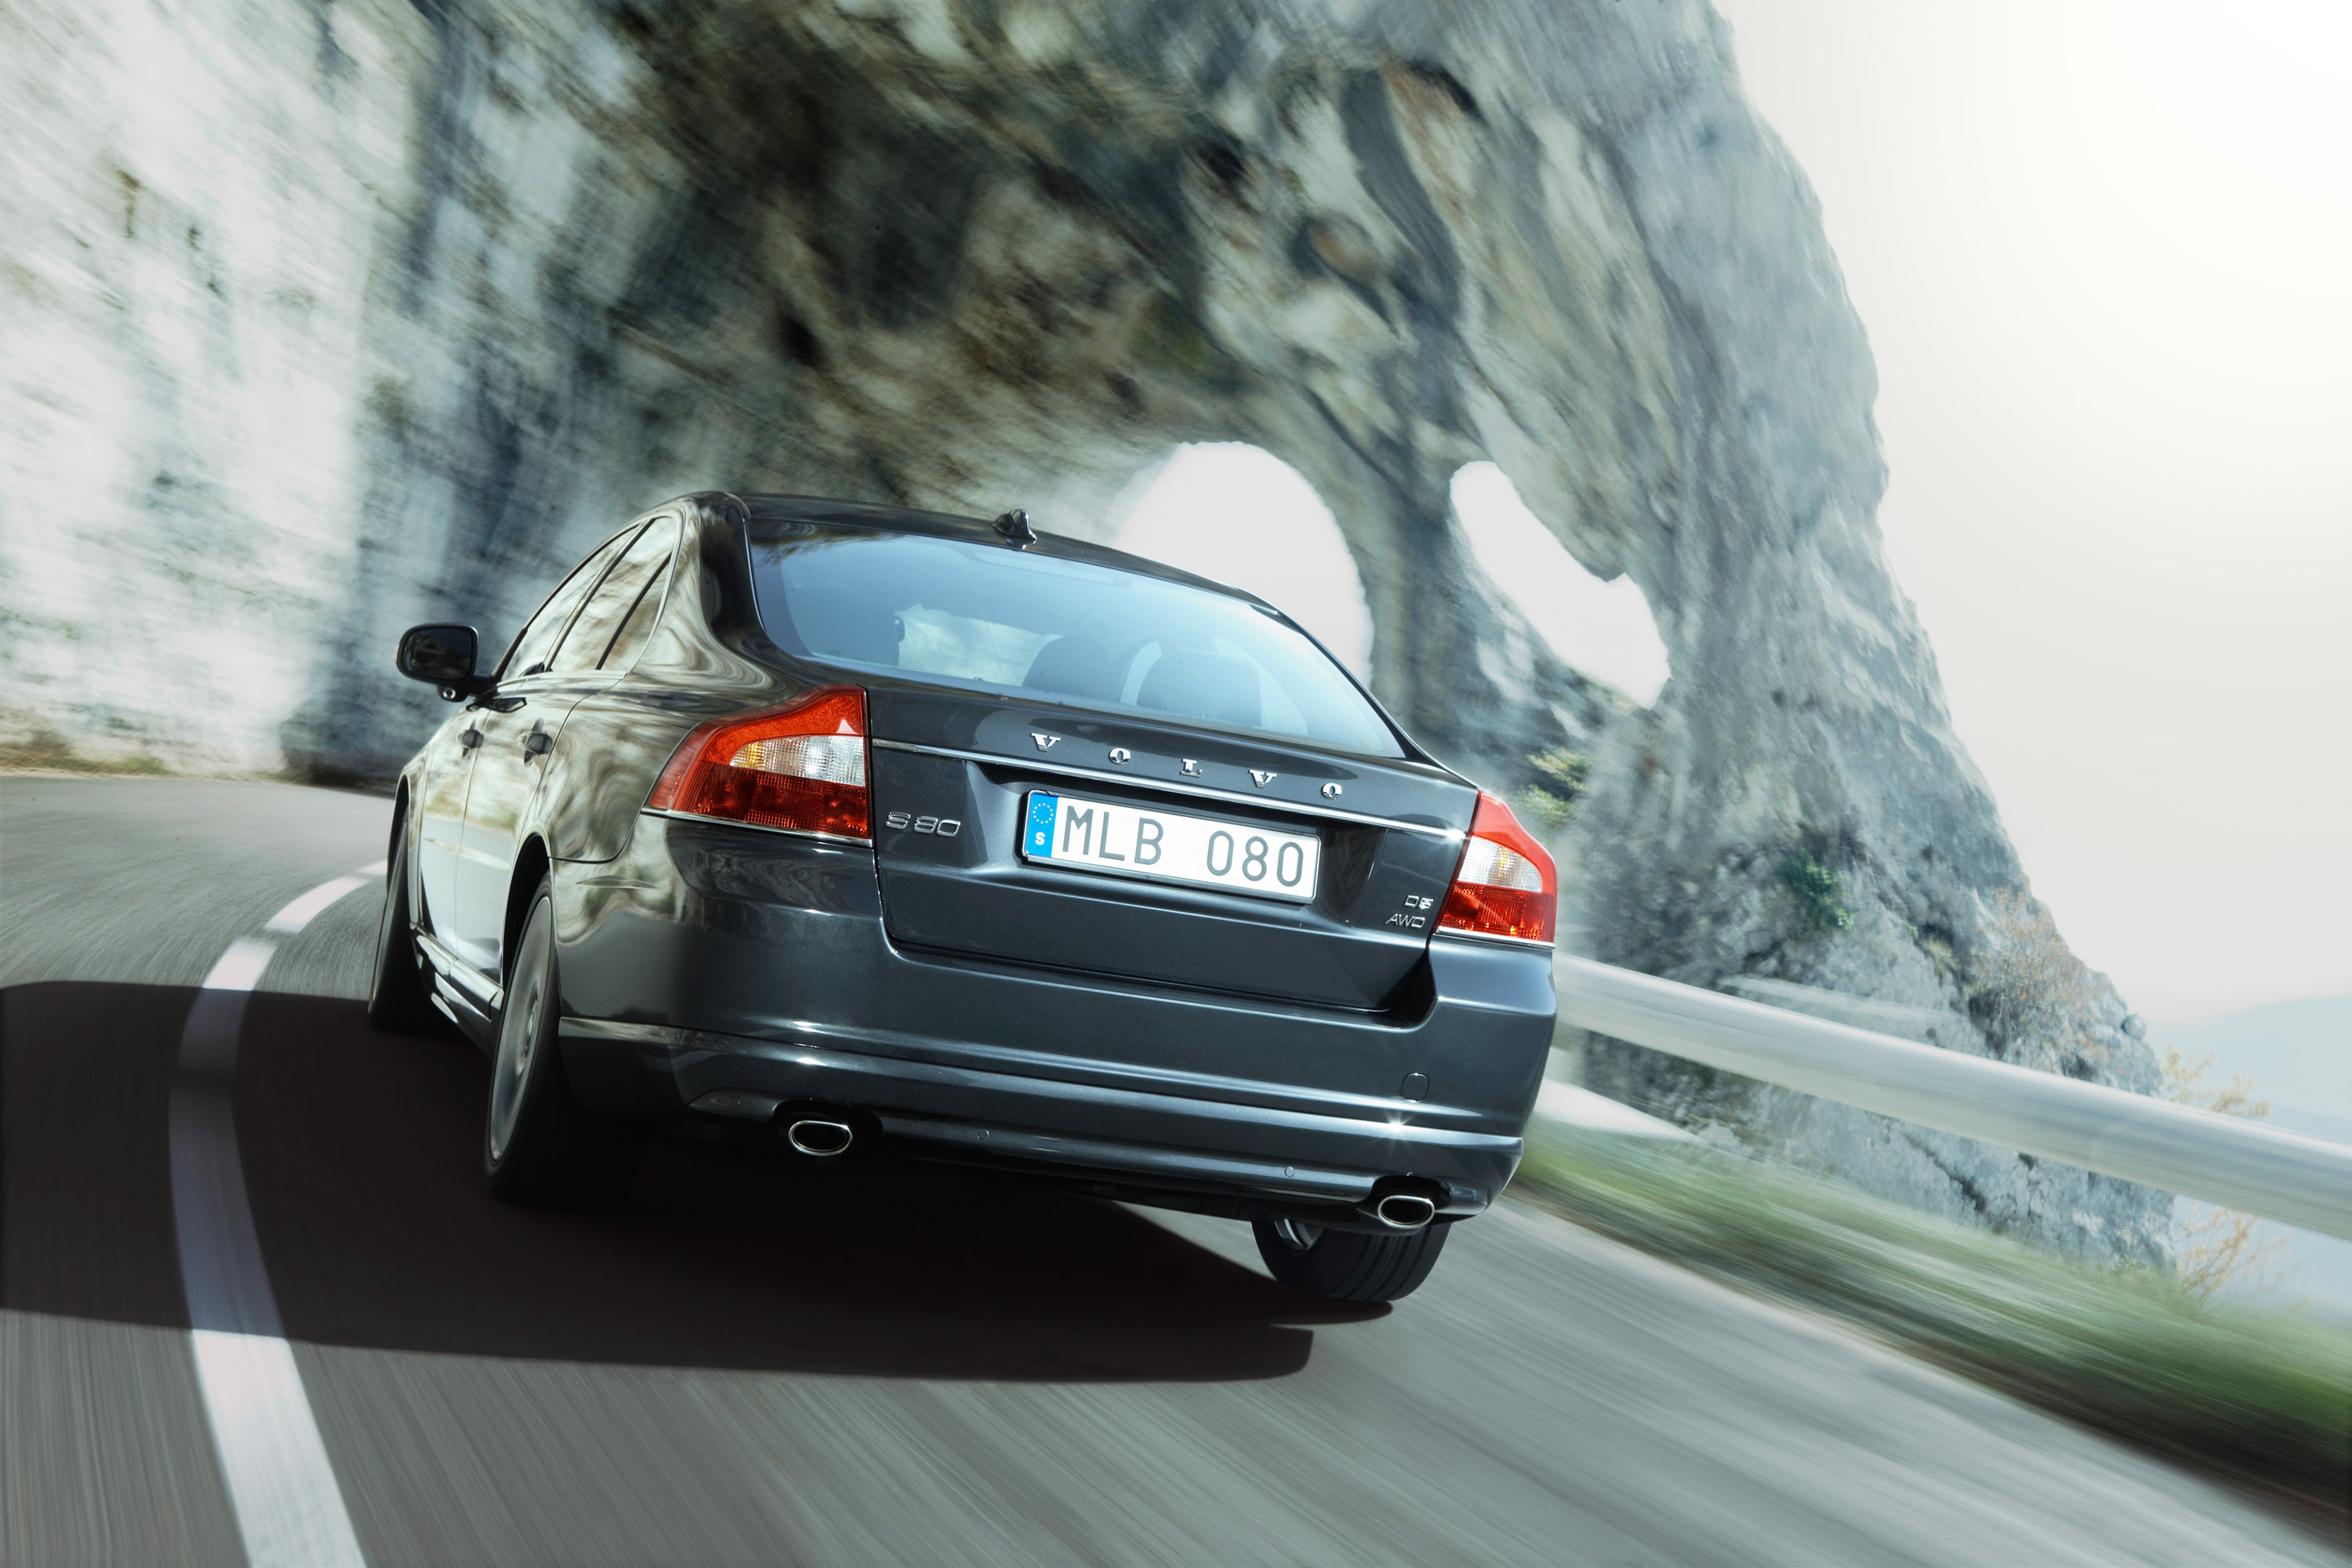 Two new chassis offer improved ride and handling in the new volvo s80 2010 volvo s80 publicscrutiny Image collections